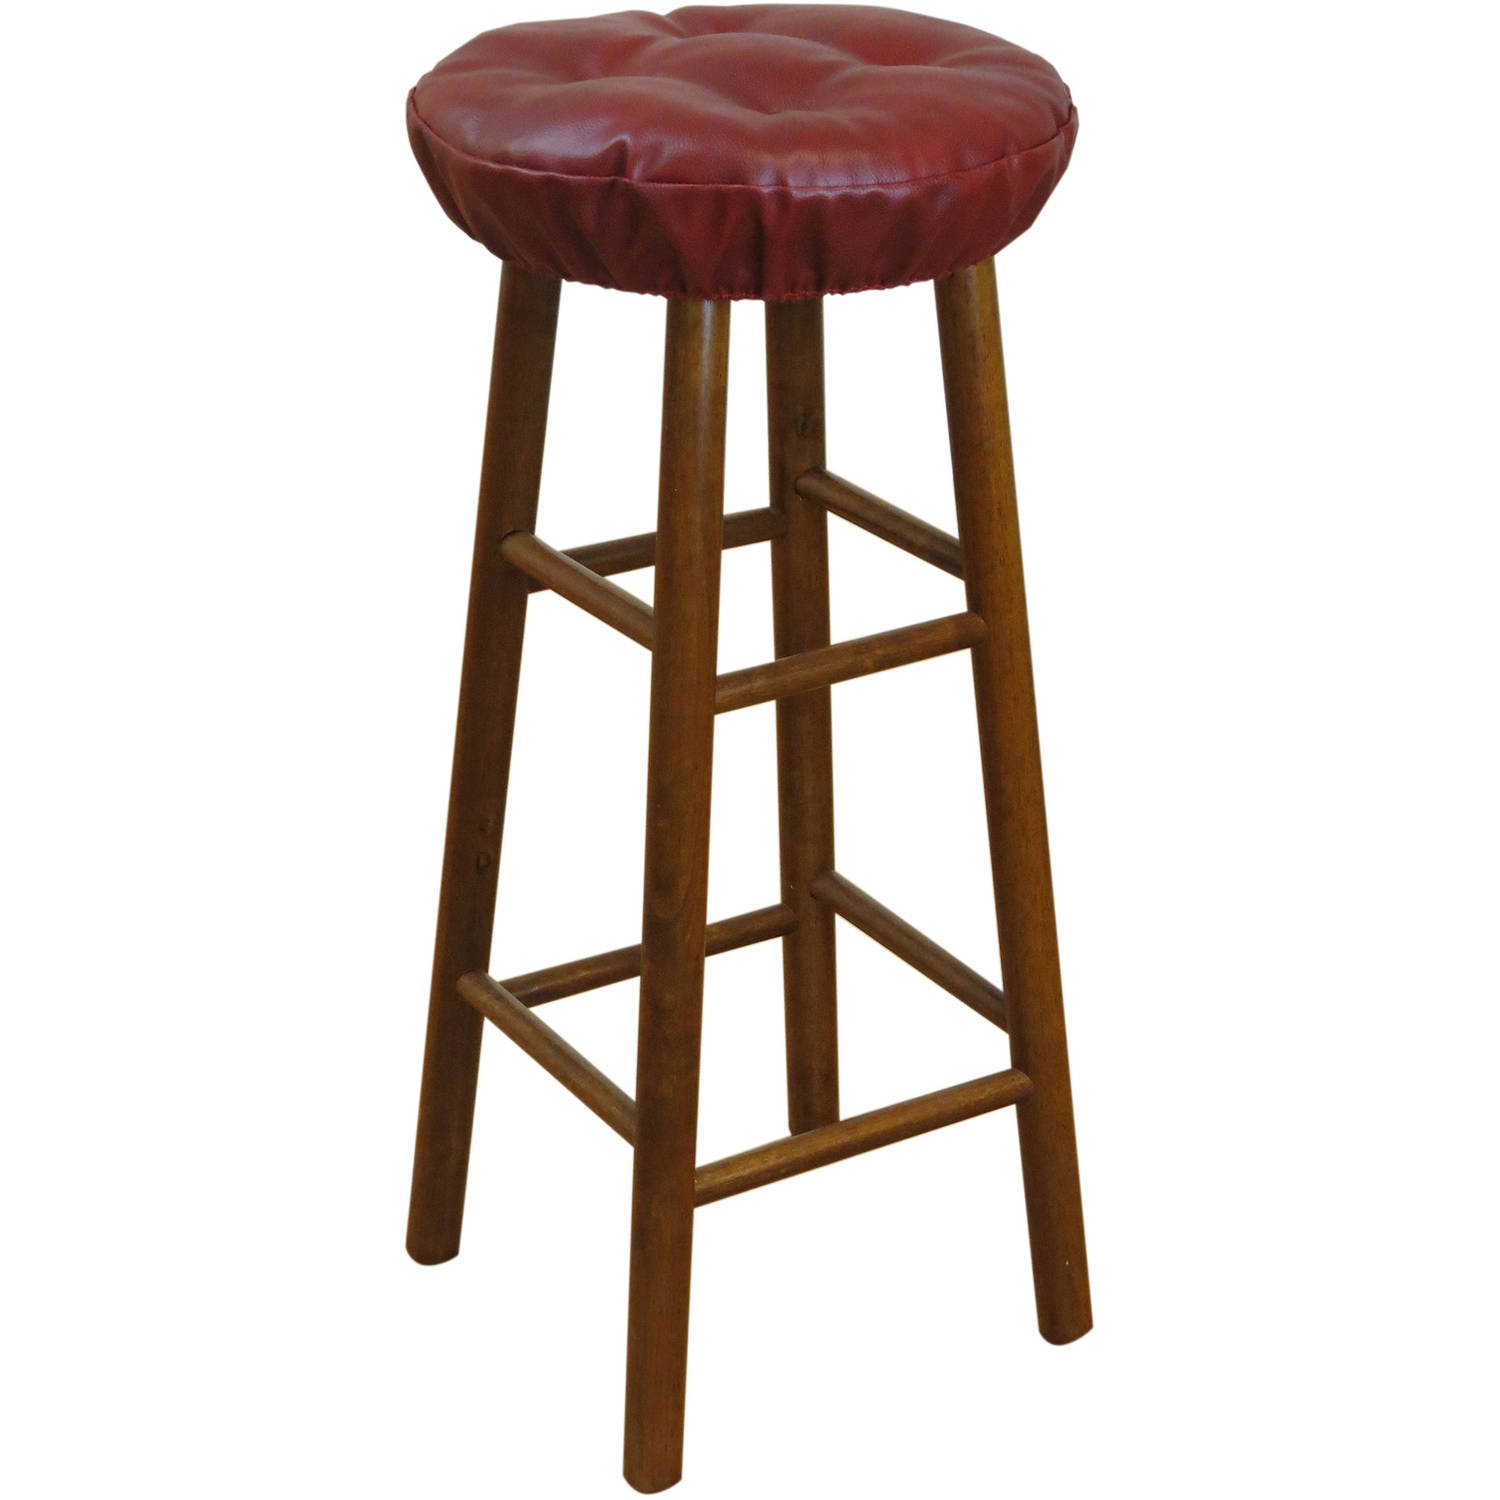 """Gripper Non-Slip 14"""" x 14"""" Faux Leather Tufted Barstool Cushions, Set of 2"""